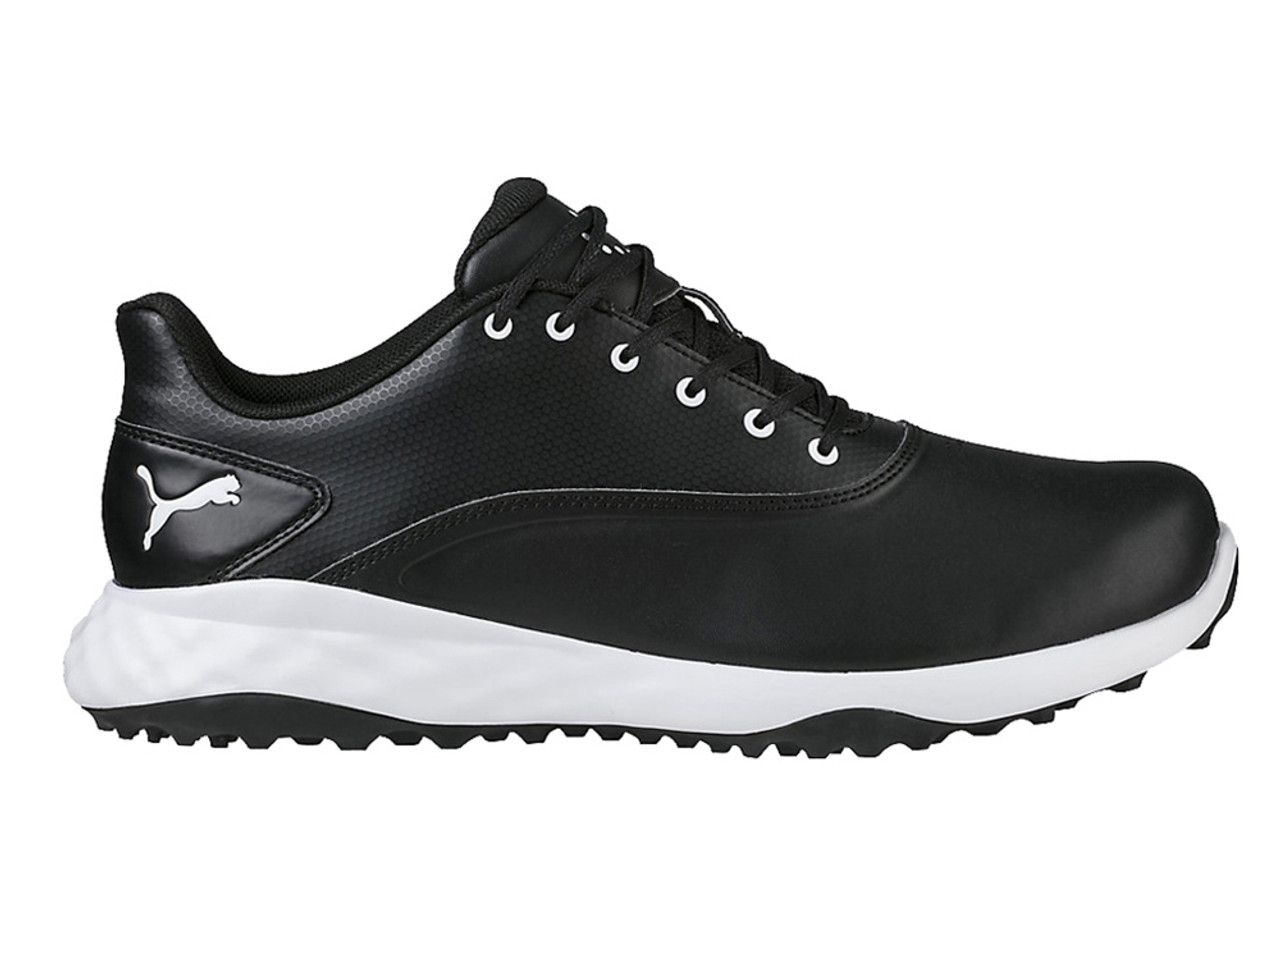 Puma Grip Fusion Shoes BlackWhite